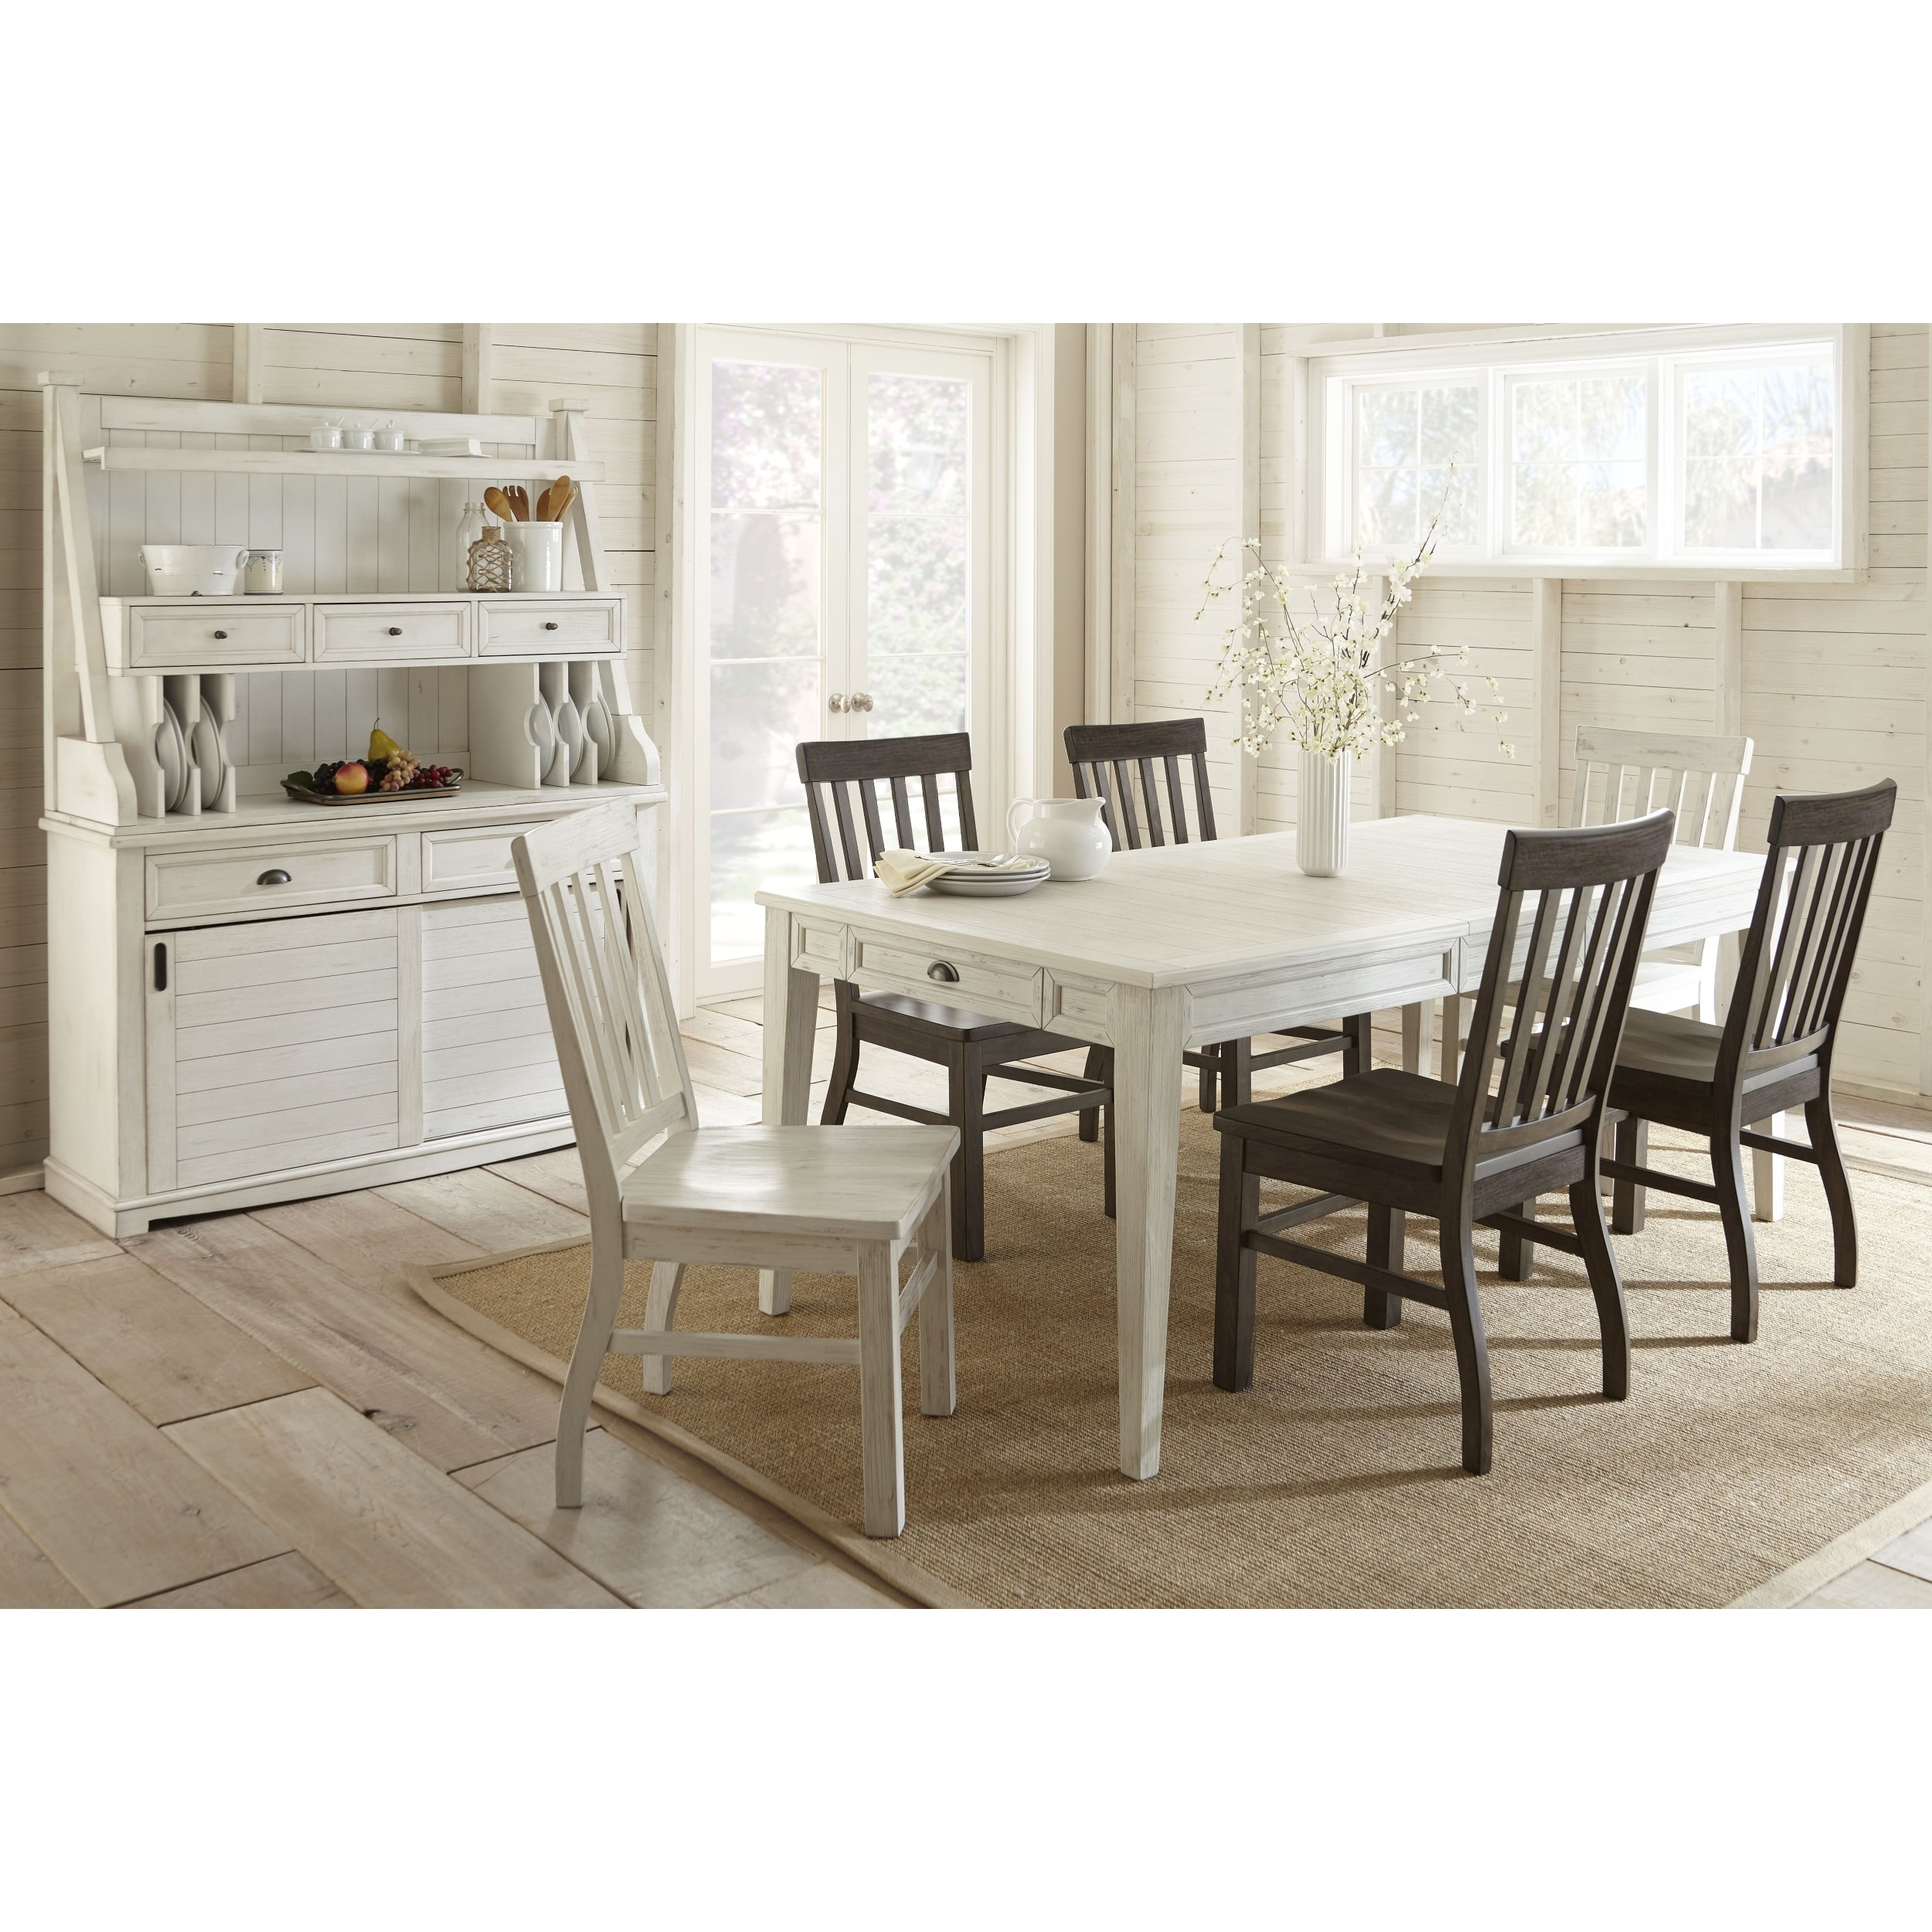 Cottonville Farmhouse Wood Dining Set by Greyson Living (...